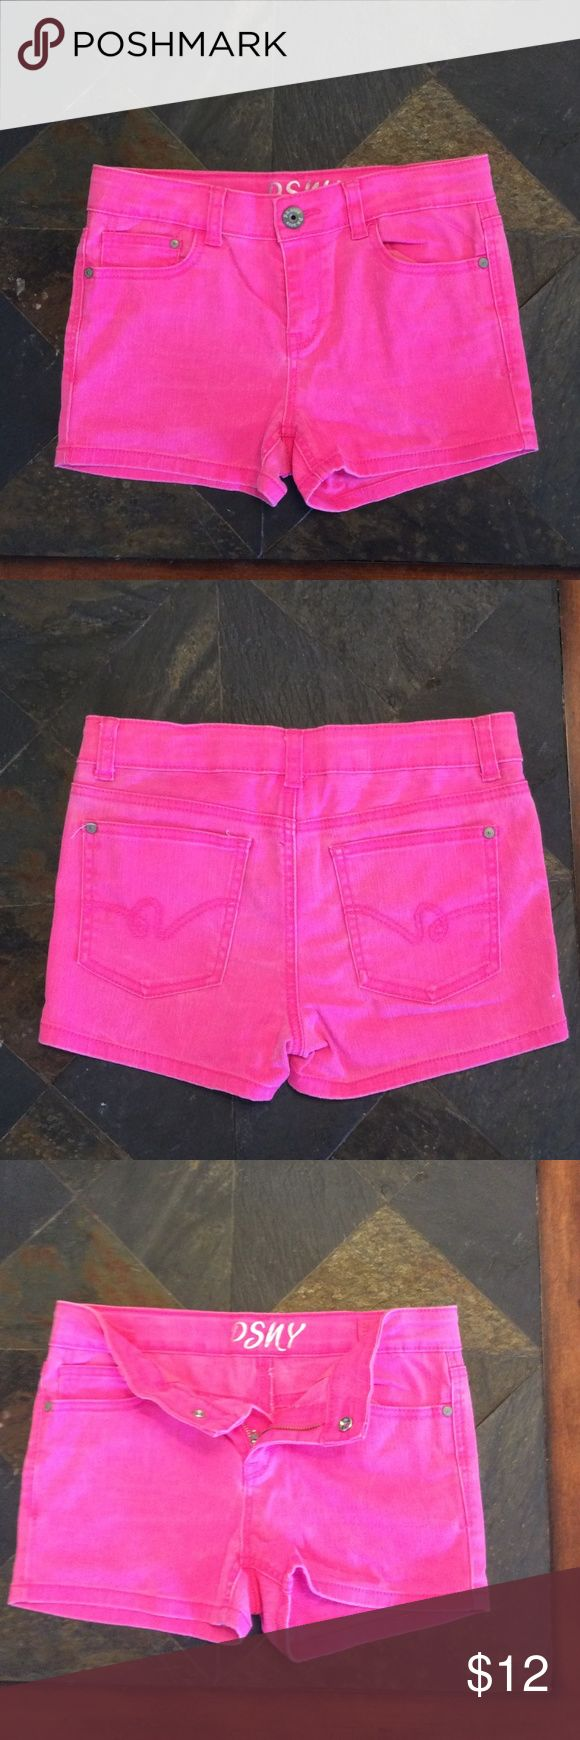 Shorts NW/OT NW/OT PSNY hot pink shorts. They have front pockets and accented back pockets. They have an adjustable waist on the inside. Materials are 98% cotton and 2% spandex. PSNY Bottoms Shorts